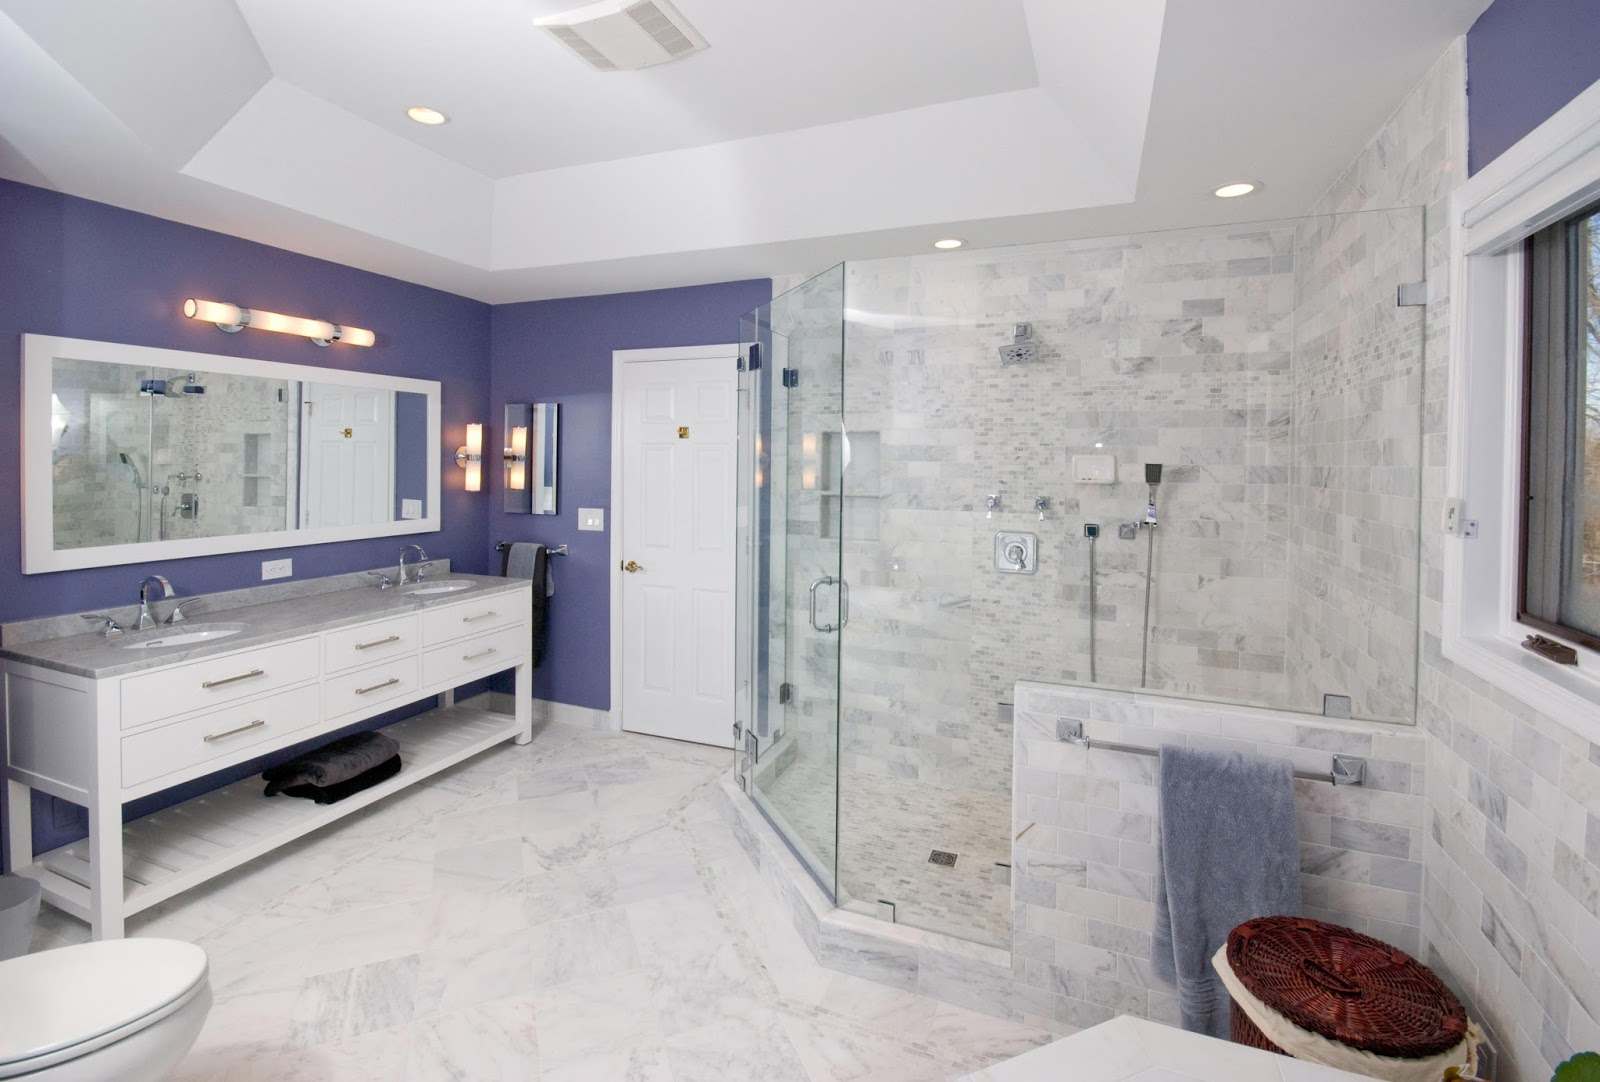 QRG Business Services Affordable Bathroom Remodeling Tips In Fairfax VA - Bathroom remodel value